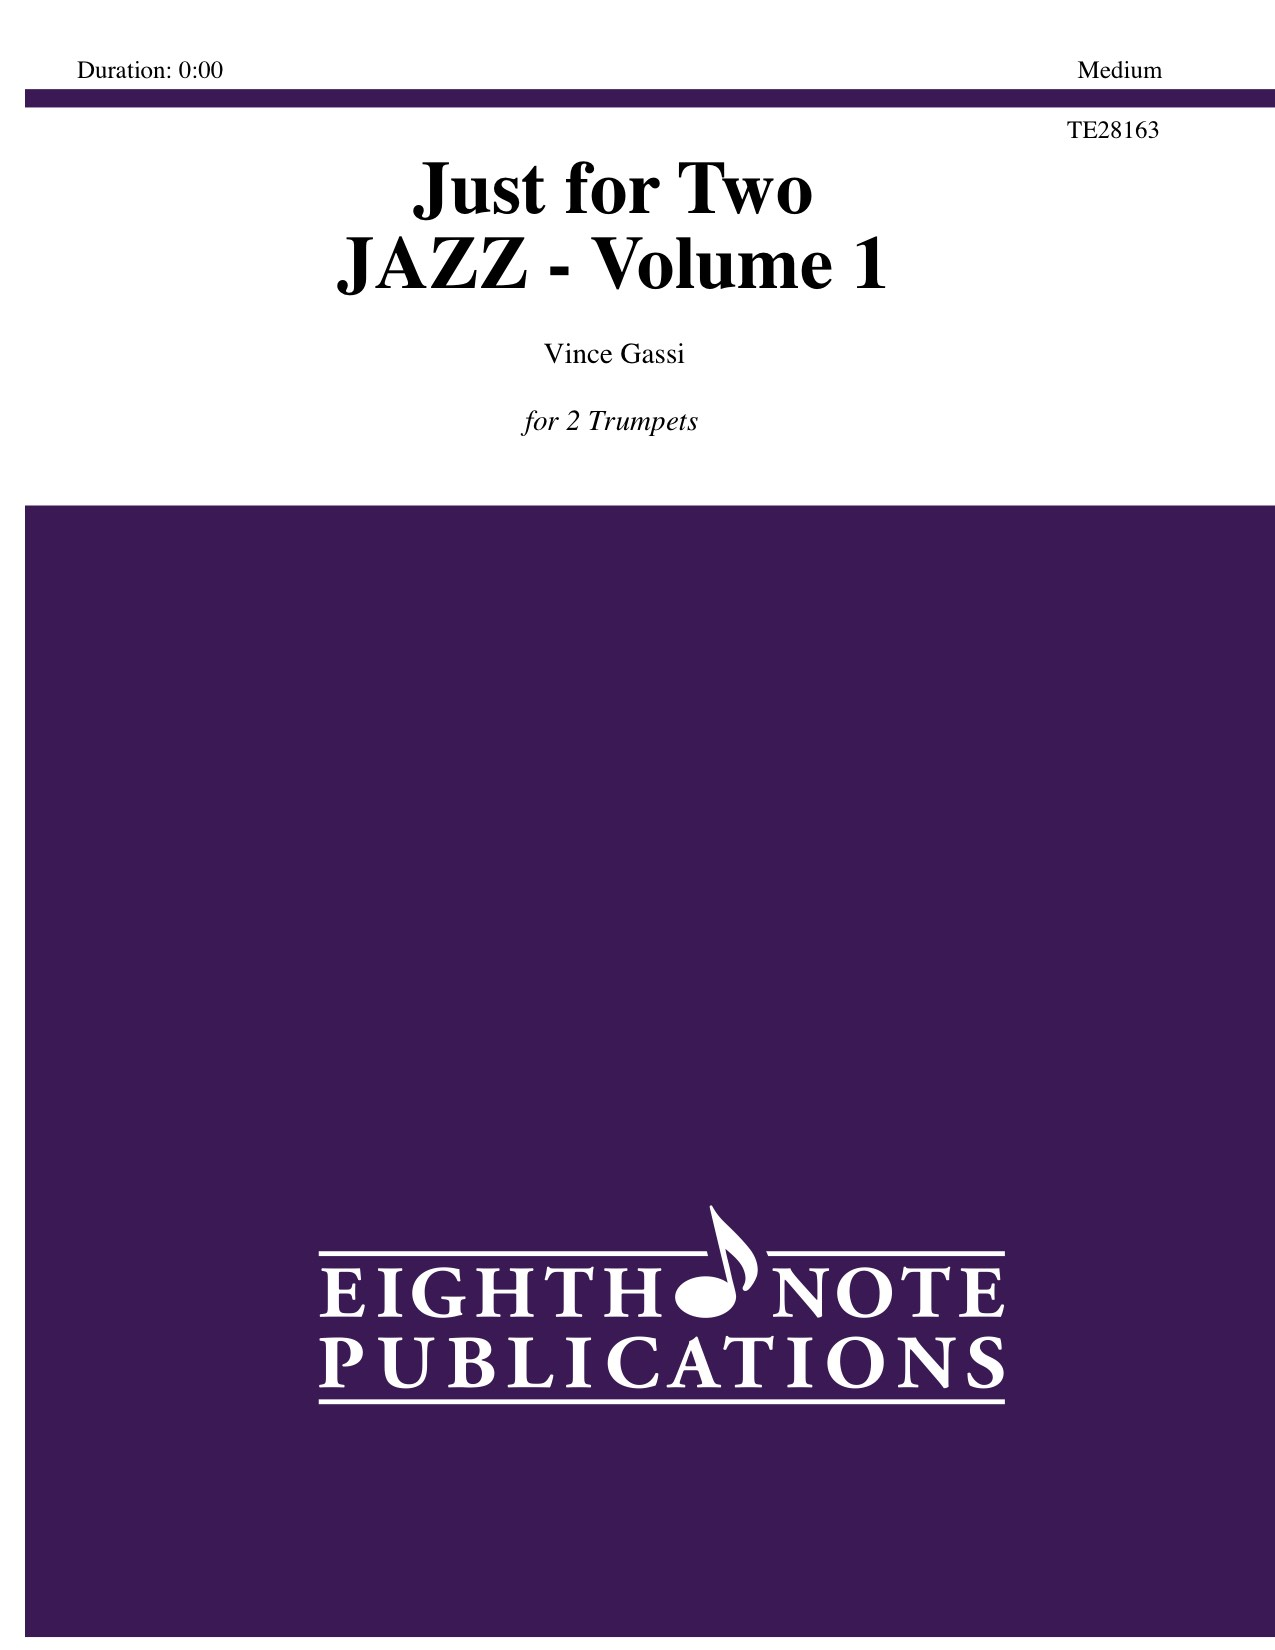 Just for 2 - Jazz - Volume 1 - Vince Gassi